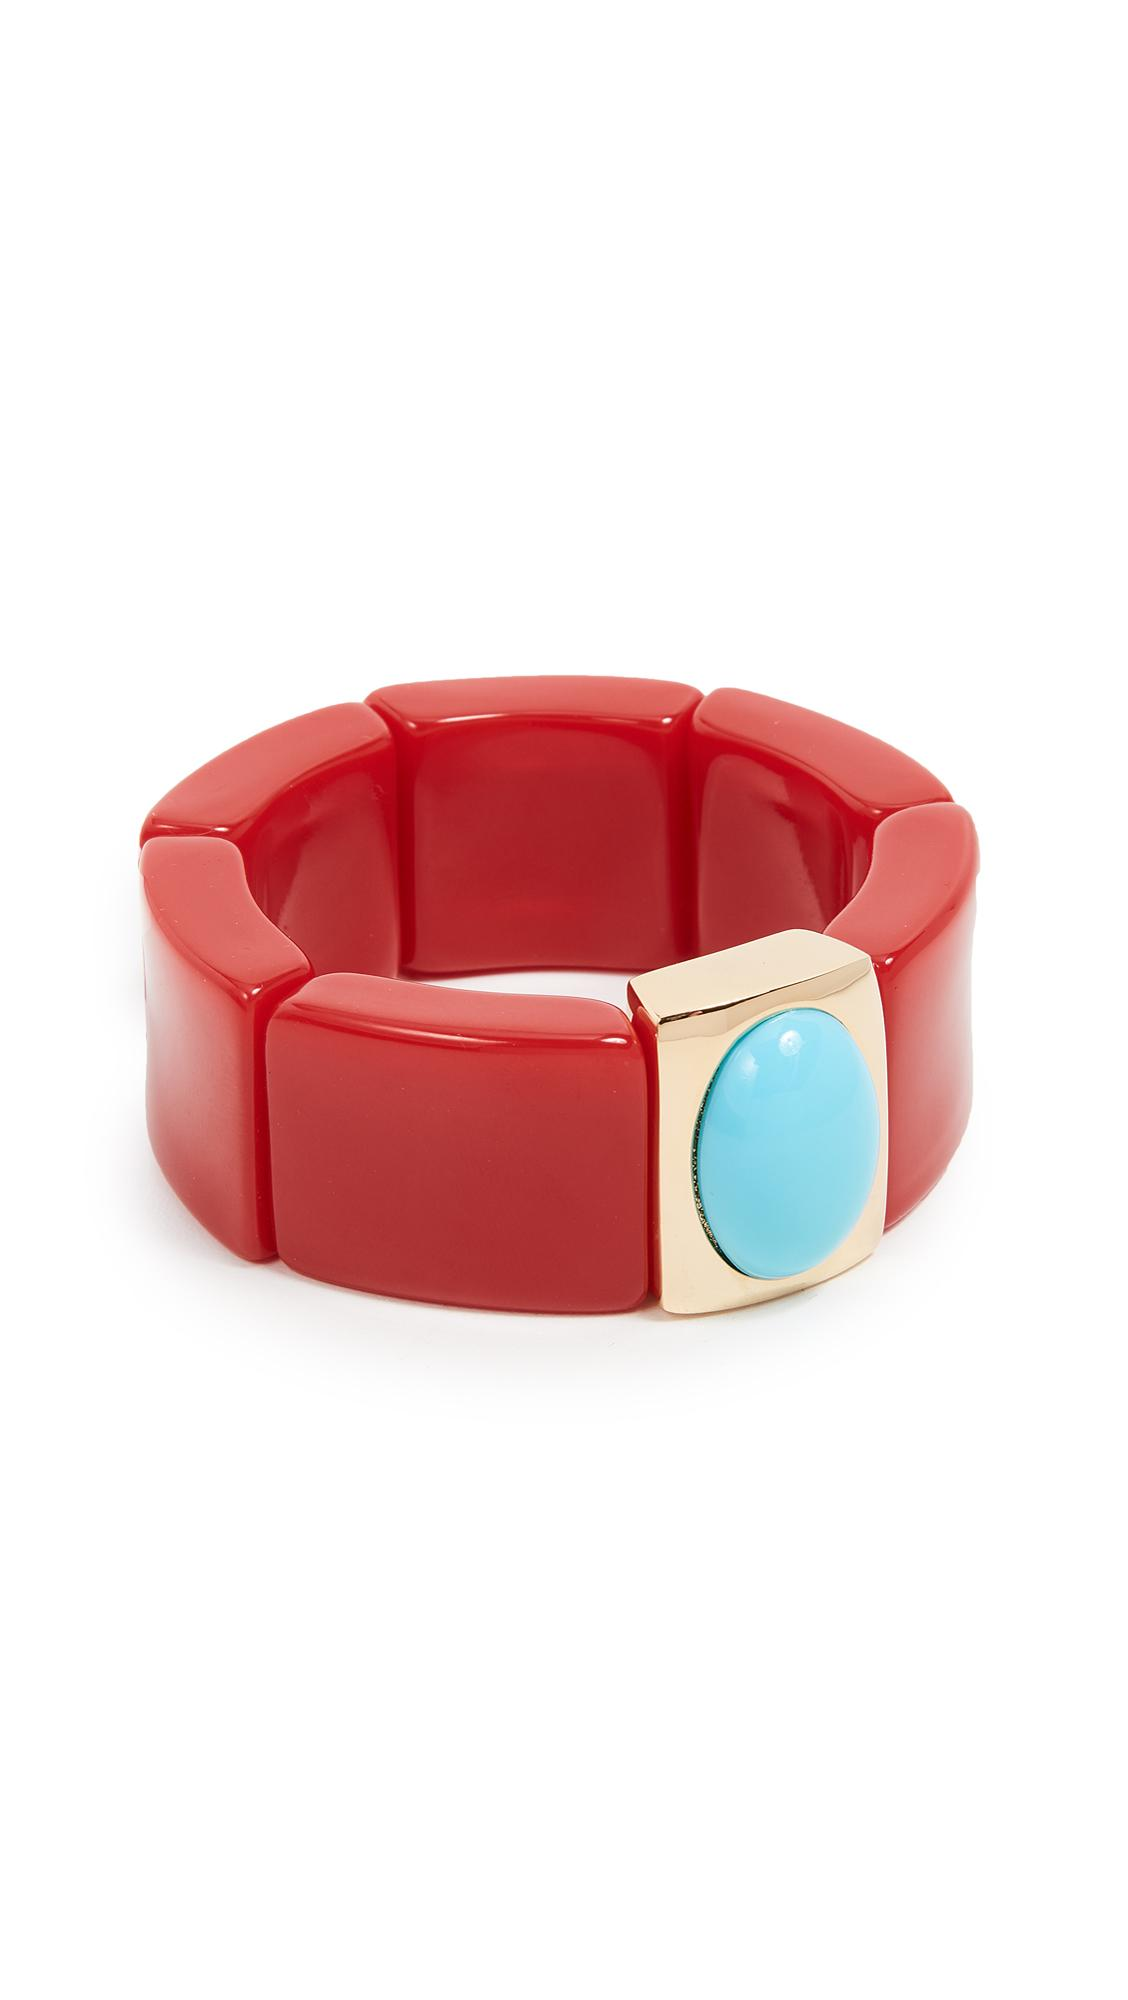 Kenneth Jay Lane Center Stretch Bracelet In Red/turquoise